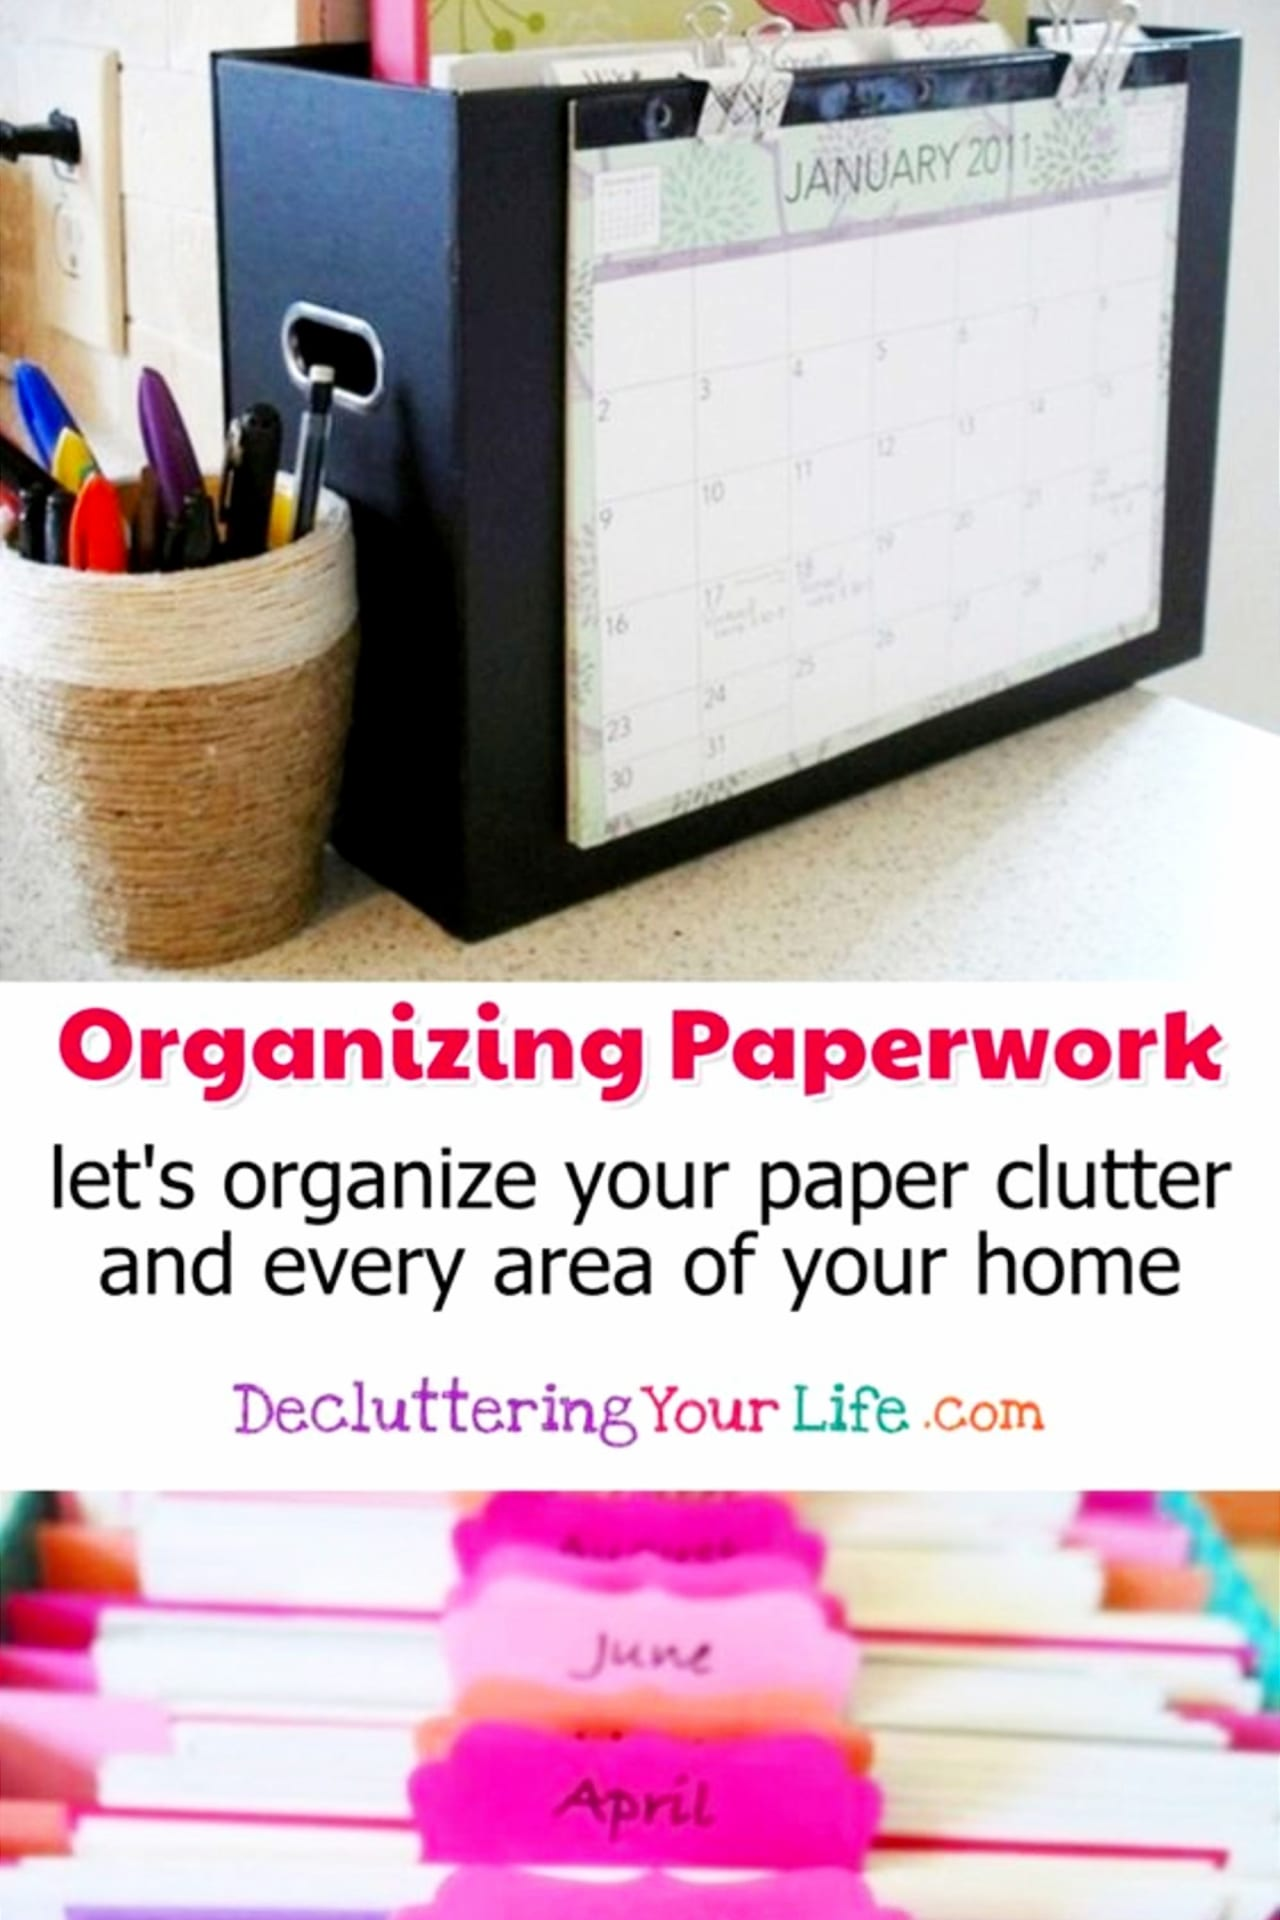 Paperwork Storage and Organization Hacks - When it comes to reducing paper clutter in your home, you need to come up with a simple paperwork storage and organization system so you don't end up with all those PILES of mail, bills, magazines, etc ALL over your home.